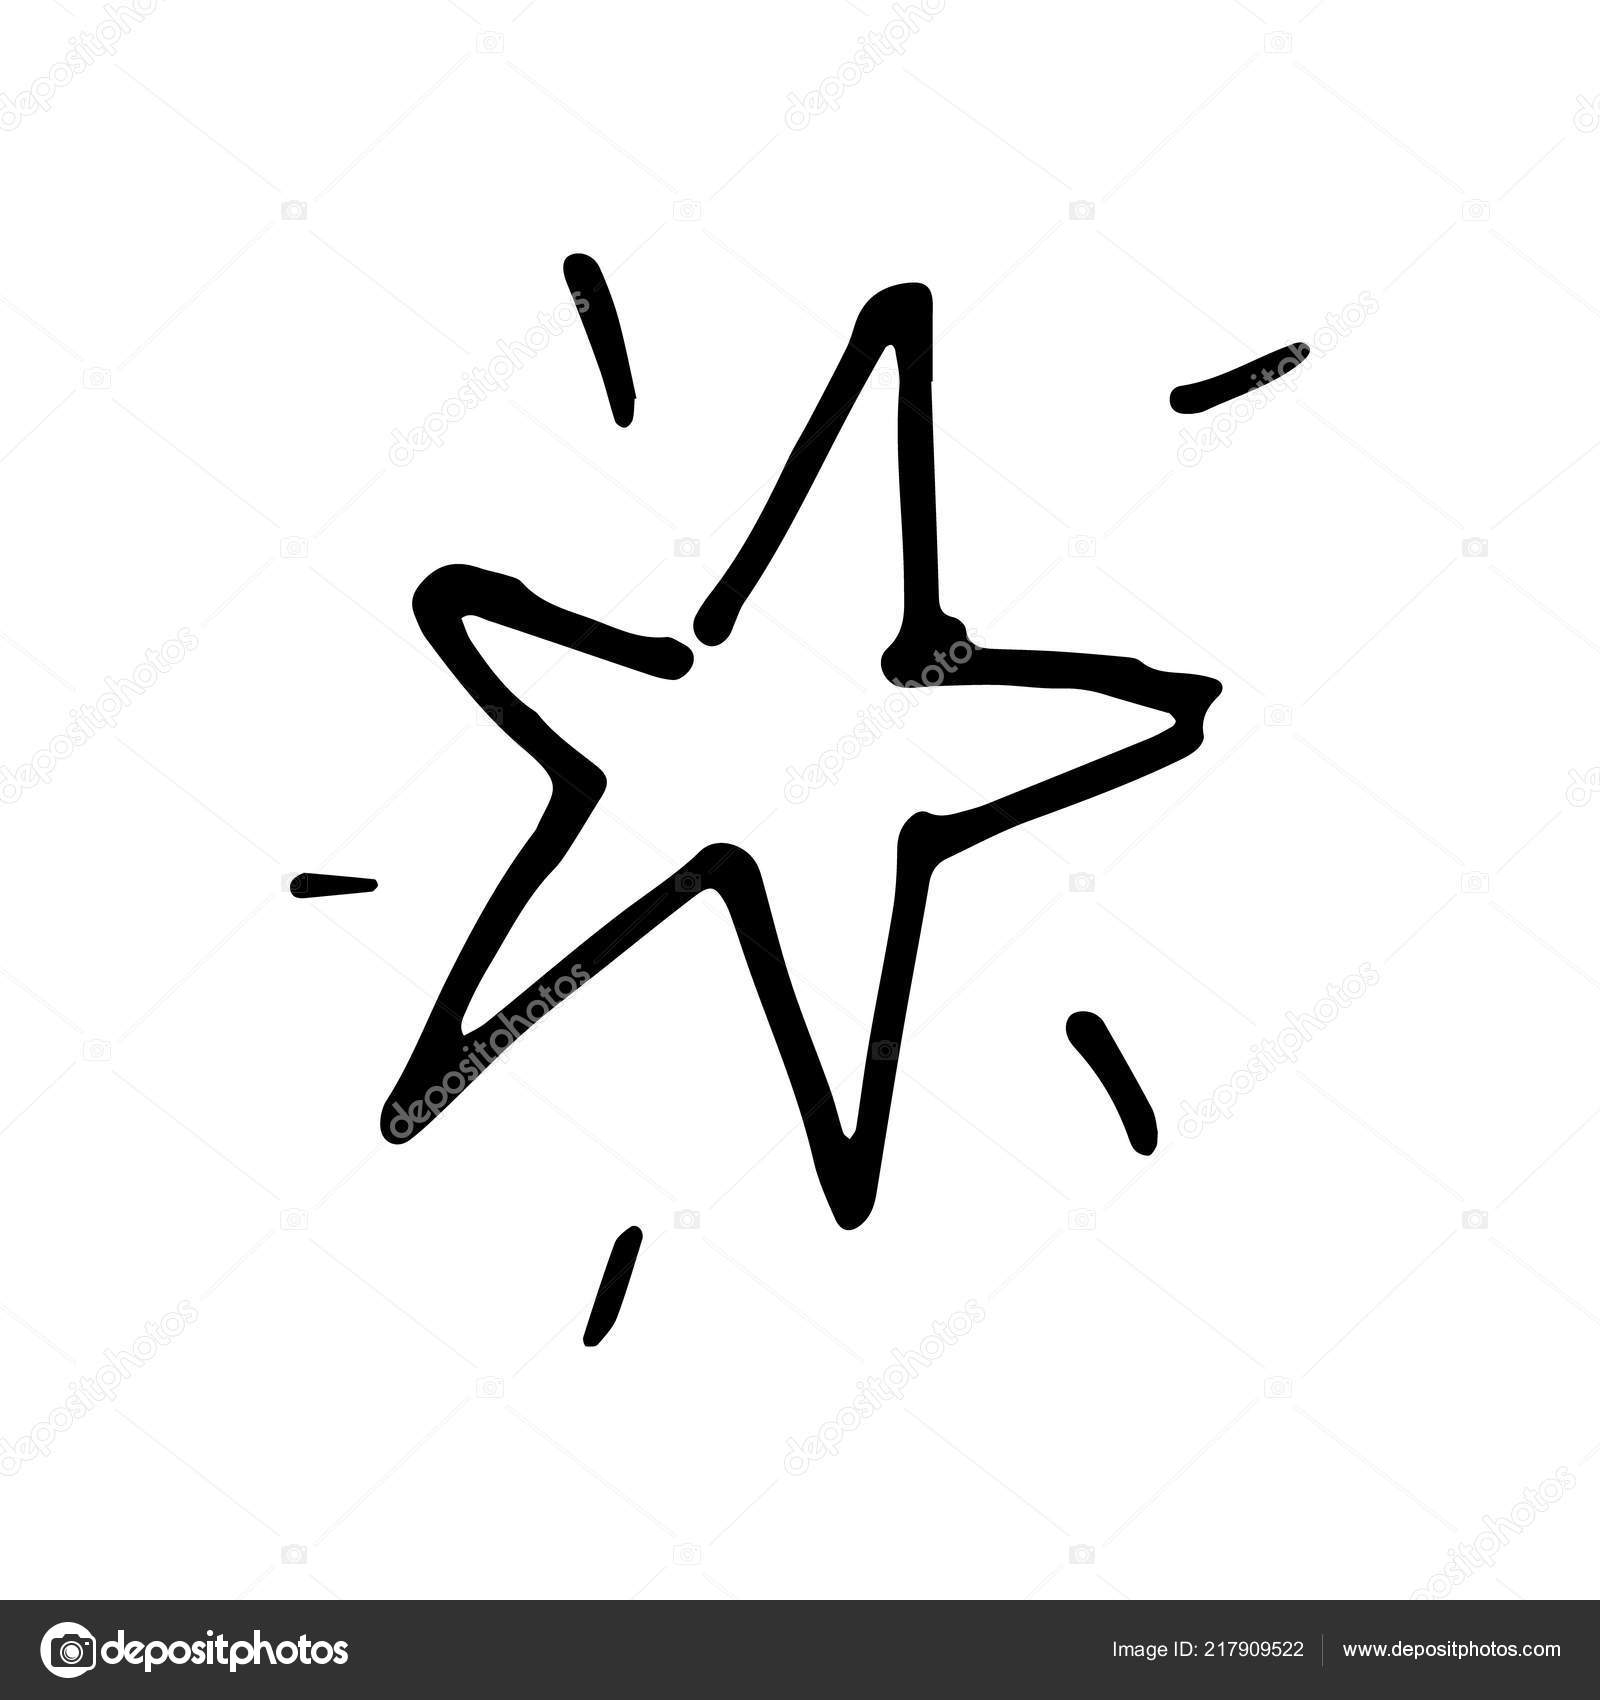 Hand Drawn Star Doodle Sketch Style Icon Decoration Element Isolated Stock Vector C Frozenbunn 217909522 Download this star notebook doodles on lined paper vector illustration now. https depositphotos com 217909522 stock illustration hand drawn star doodle sketch html